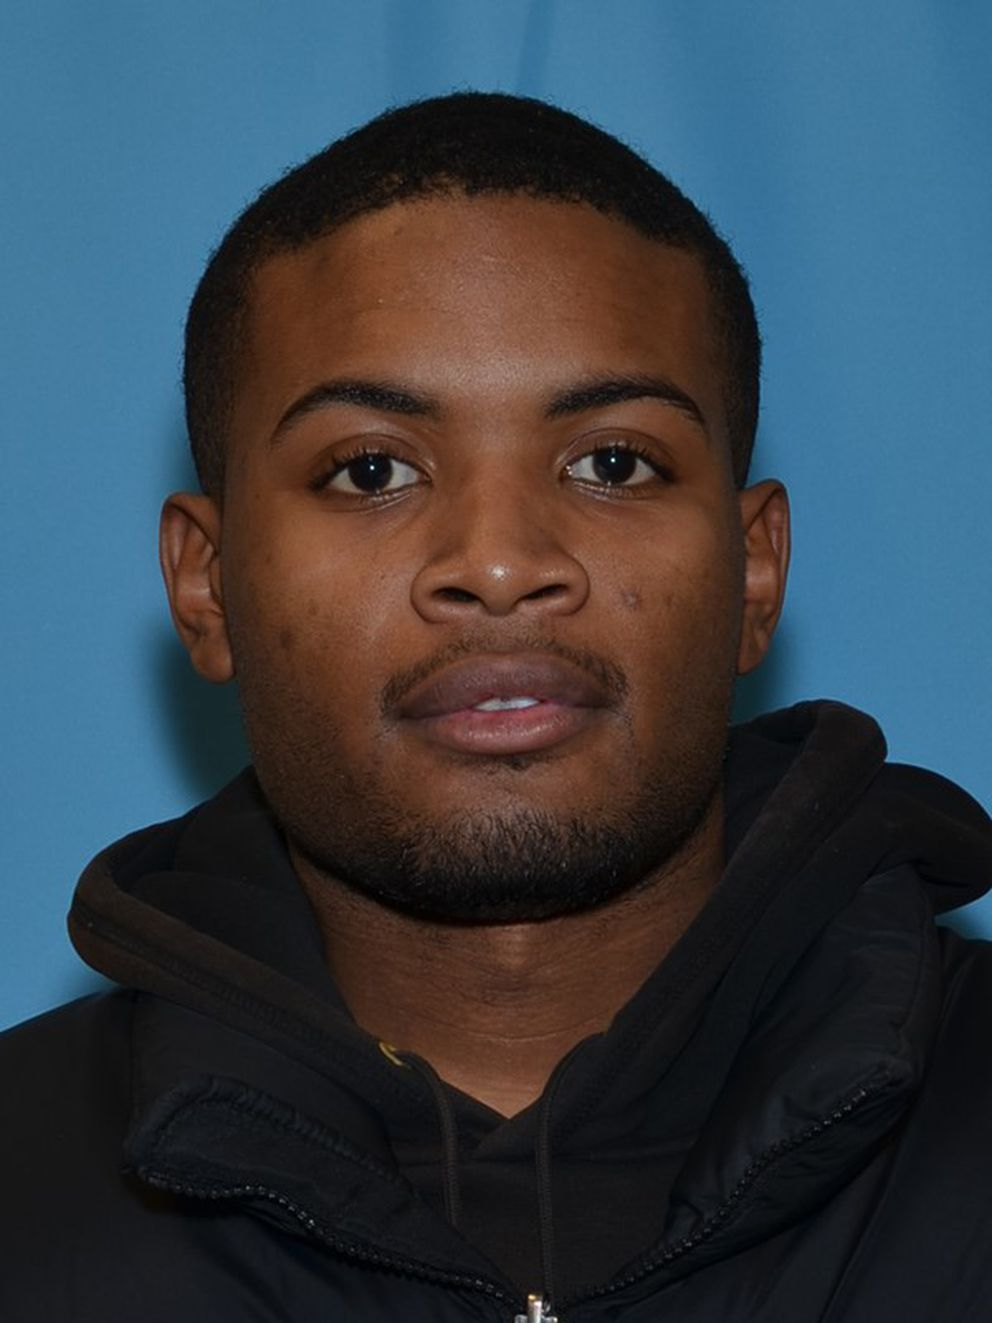 Anchorage police are seeking Delander Owens Jr., 21, in connection with a string of gunpoint robberies in late January and early February 2017. (From APD)